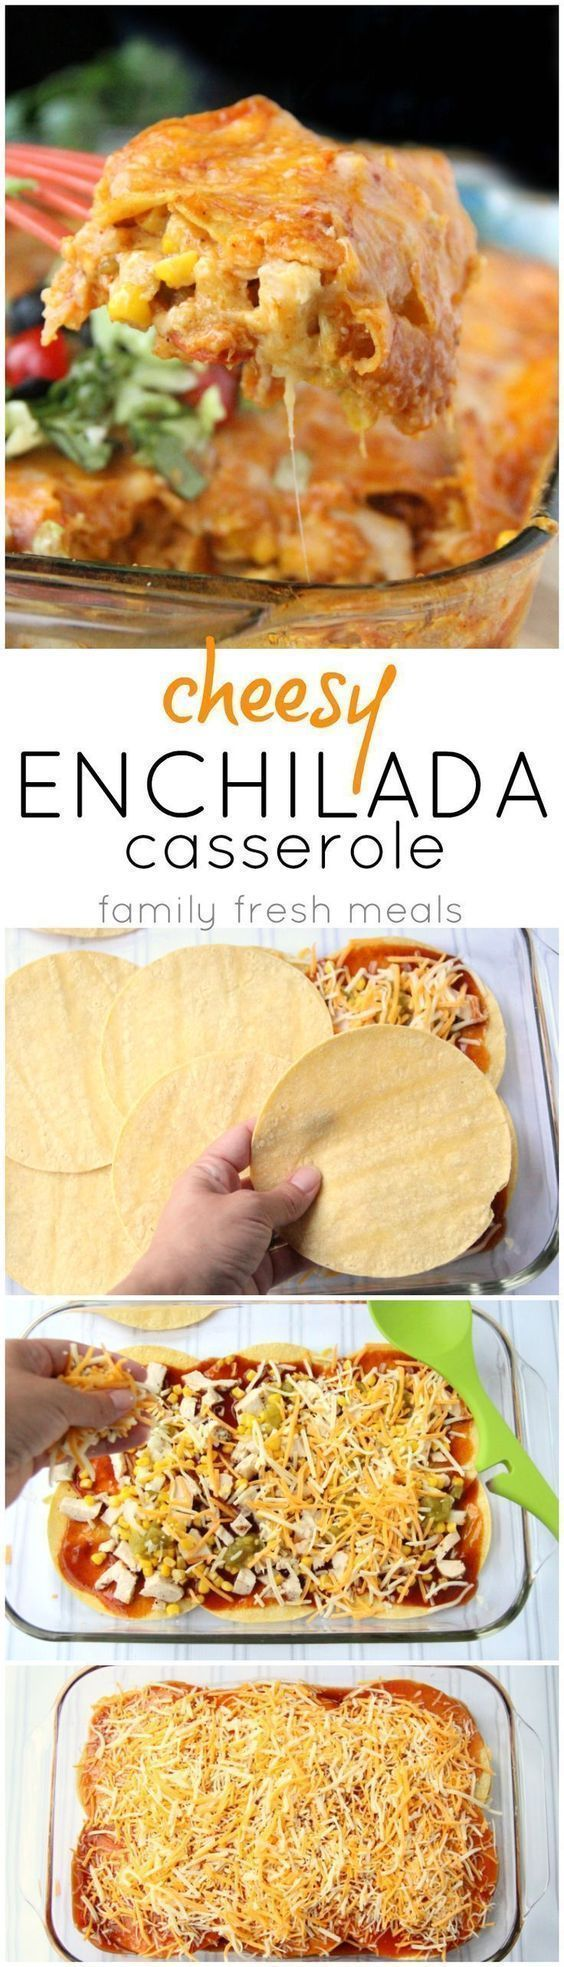 Dinner will be ready in 30 minutes! Cheesy Chicken Enchilada Casserole Recipe #30minutes #casserole #familyfreshmeals #chicken #enchiladas #mexican #recipe